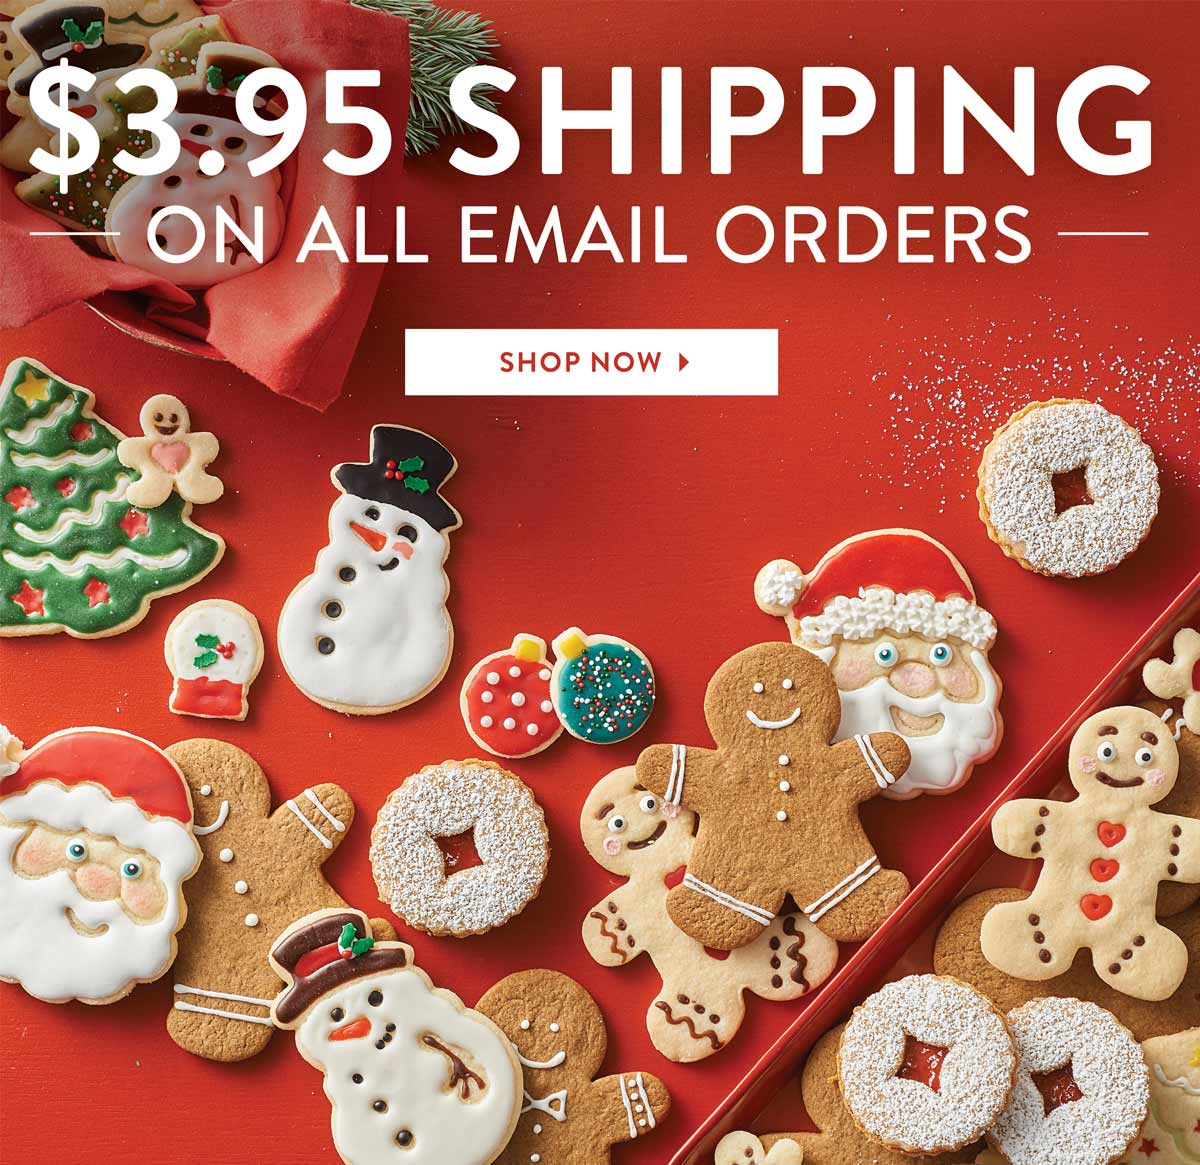 $3.95 Shipping on all email orders